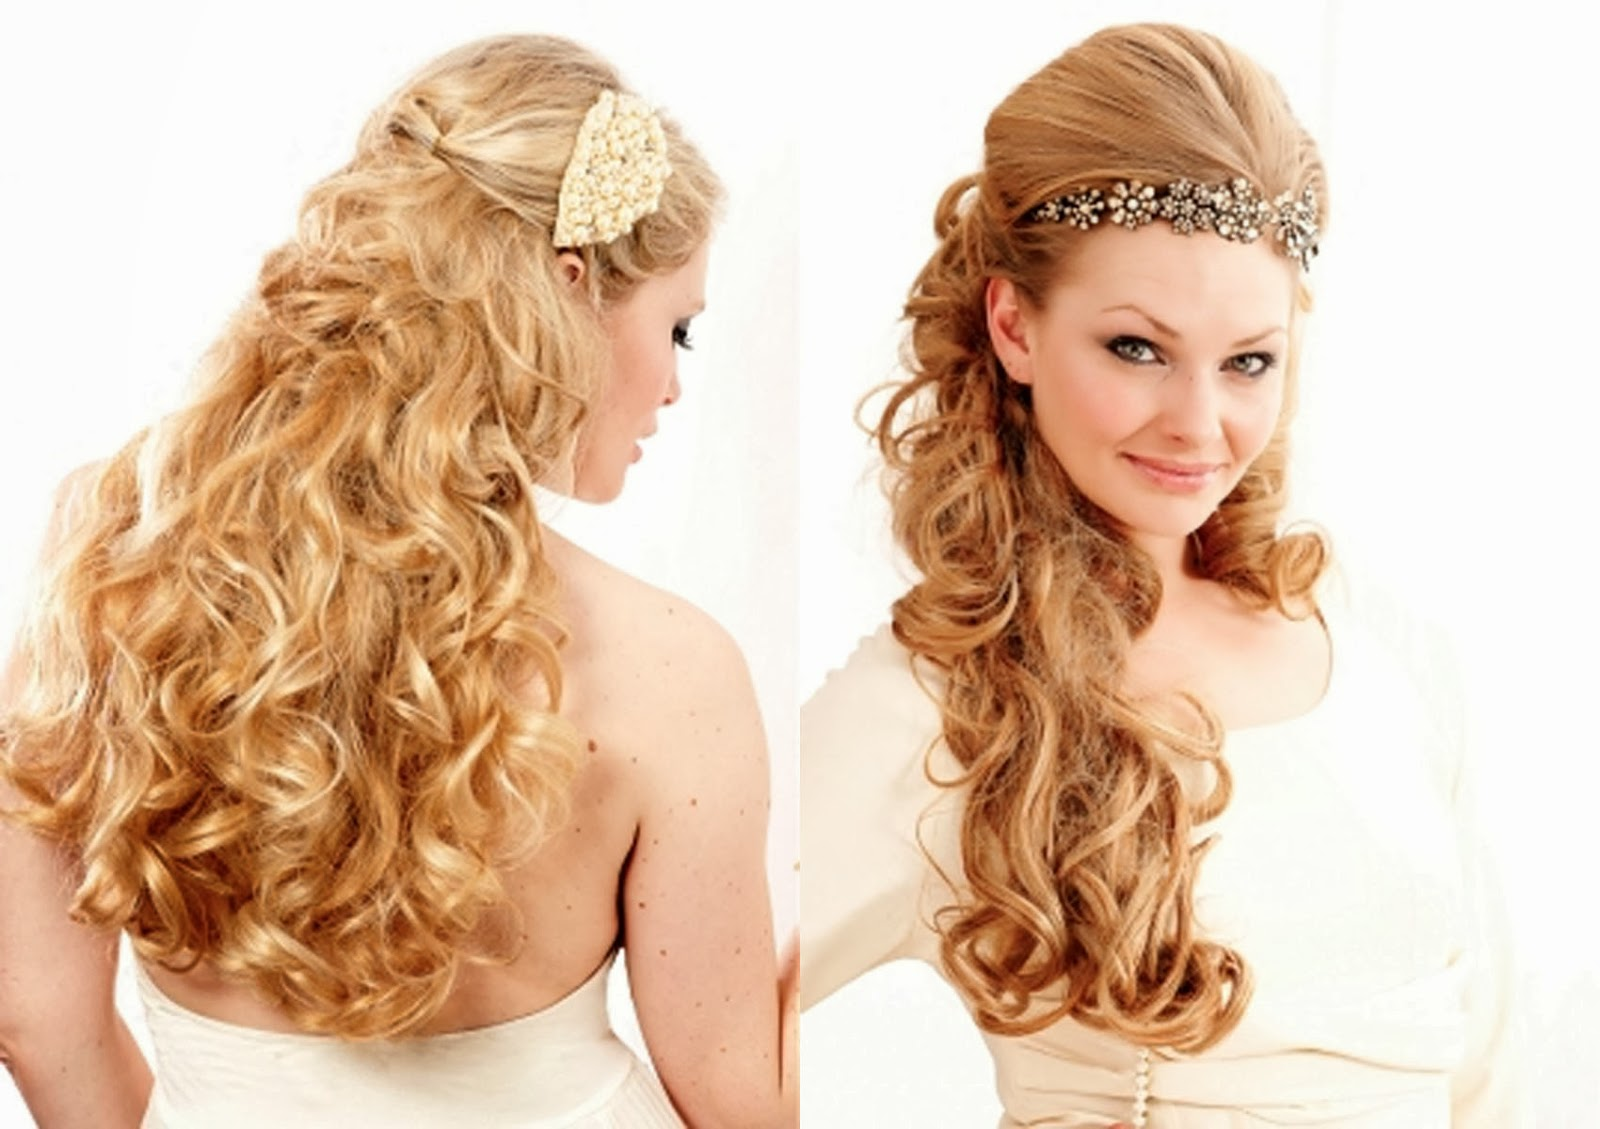 Tremendous Curly Hairstyles For Long Hair Women Hair Fashion Style Color Hairstyle Inspiration Daily Dogsangcom